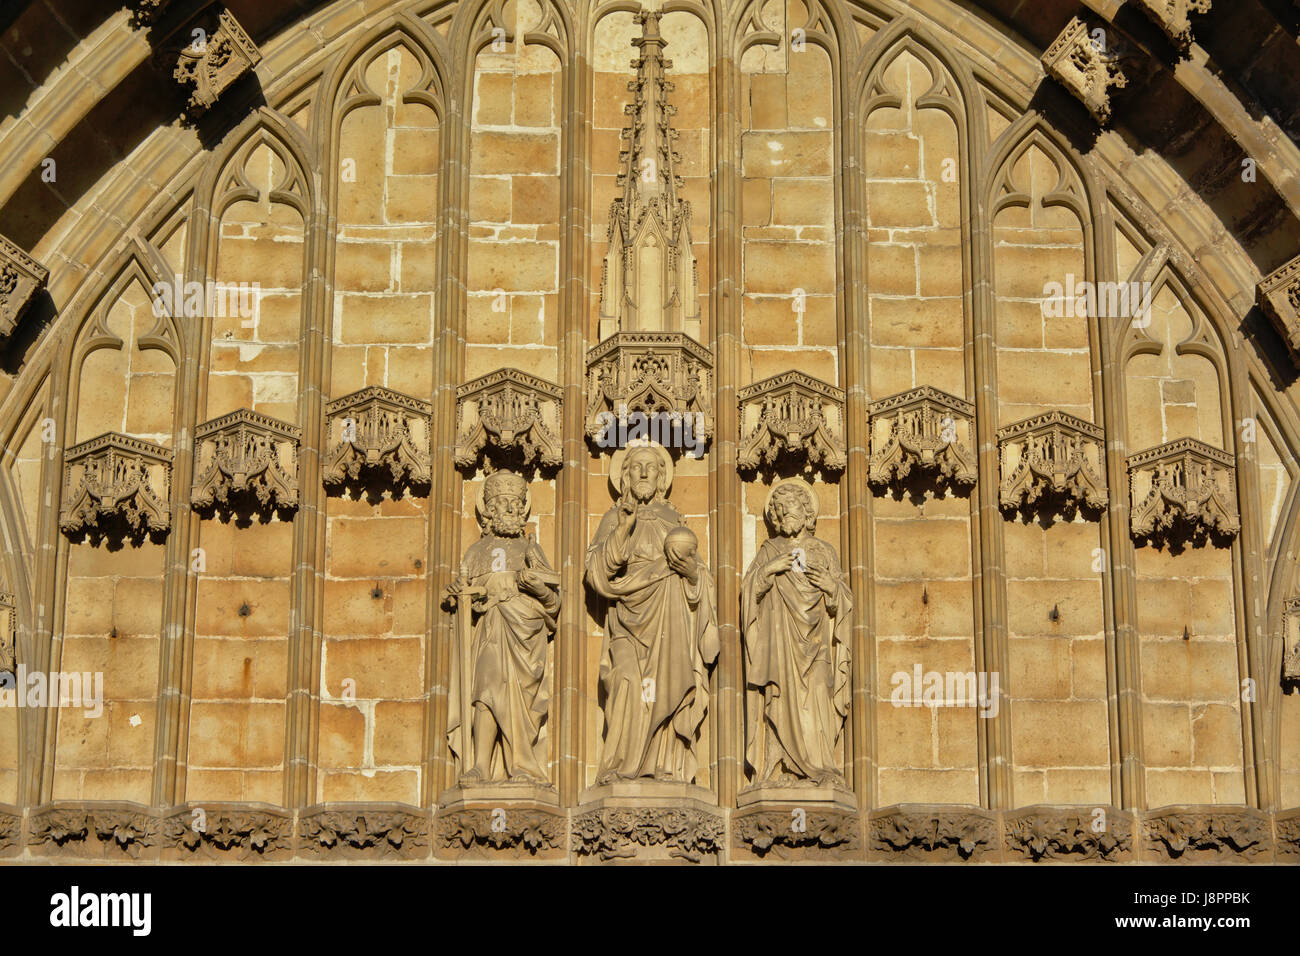 Statues of three saints above the entrance of Saint Bavo Cathedral, Ghent, Belgium - Stock Image